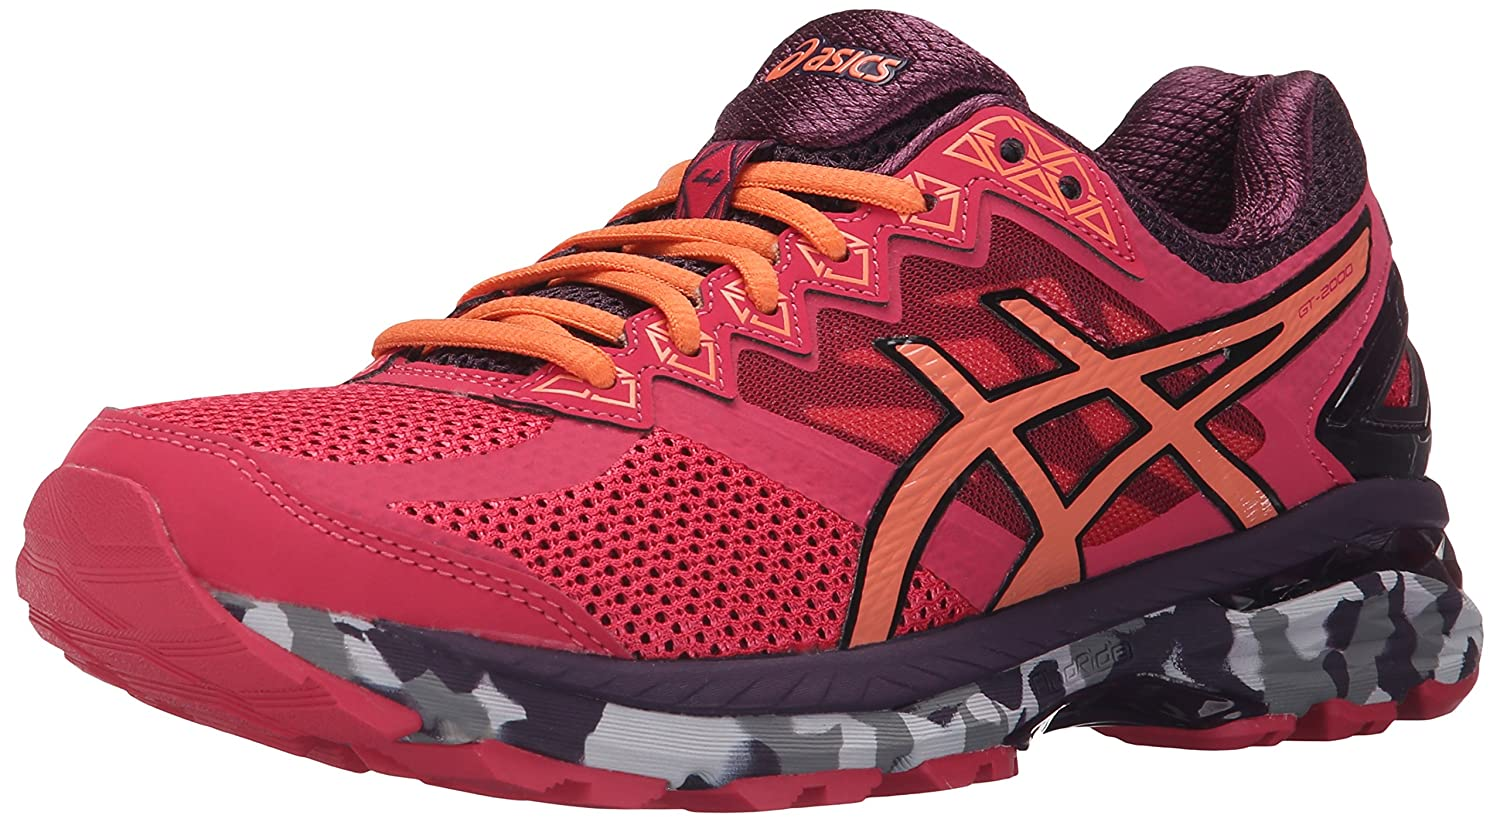 ASICS Women's GT-2000 4 Trail Running Shoe B00YCYG3BU 12 B(M) US|Azalea/Melon/Perfect Plum